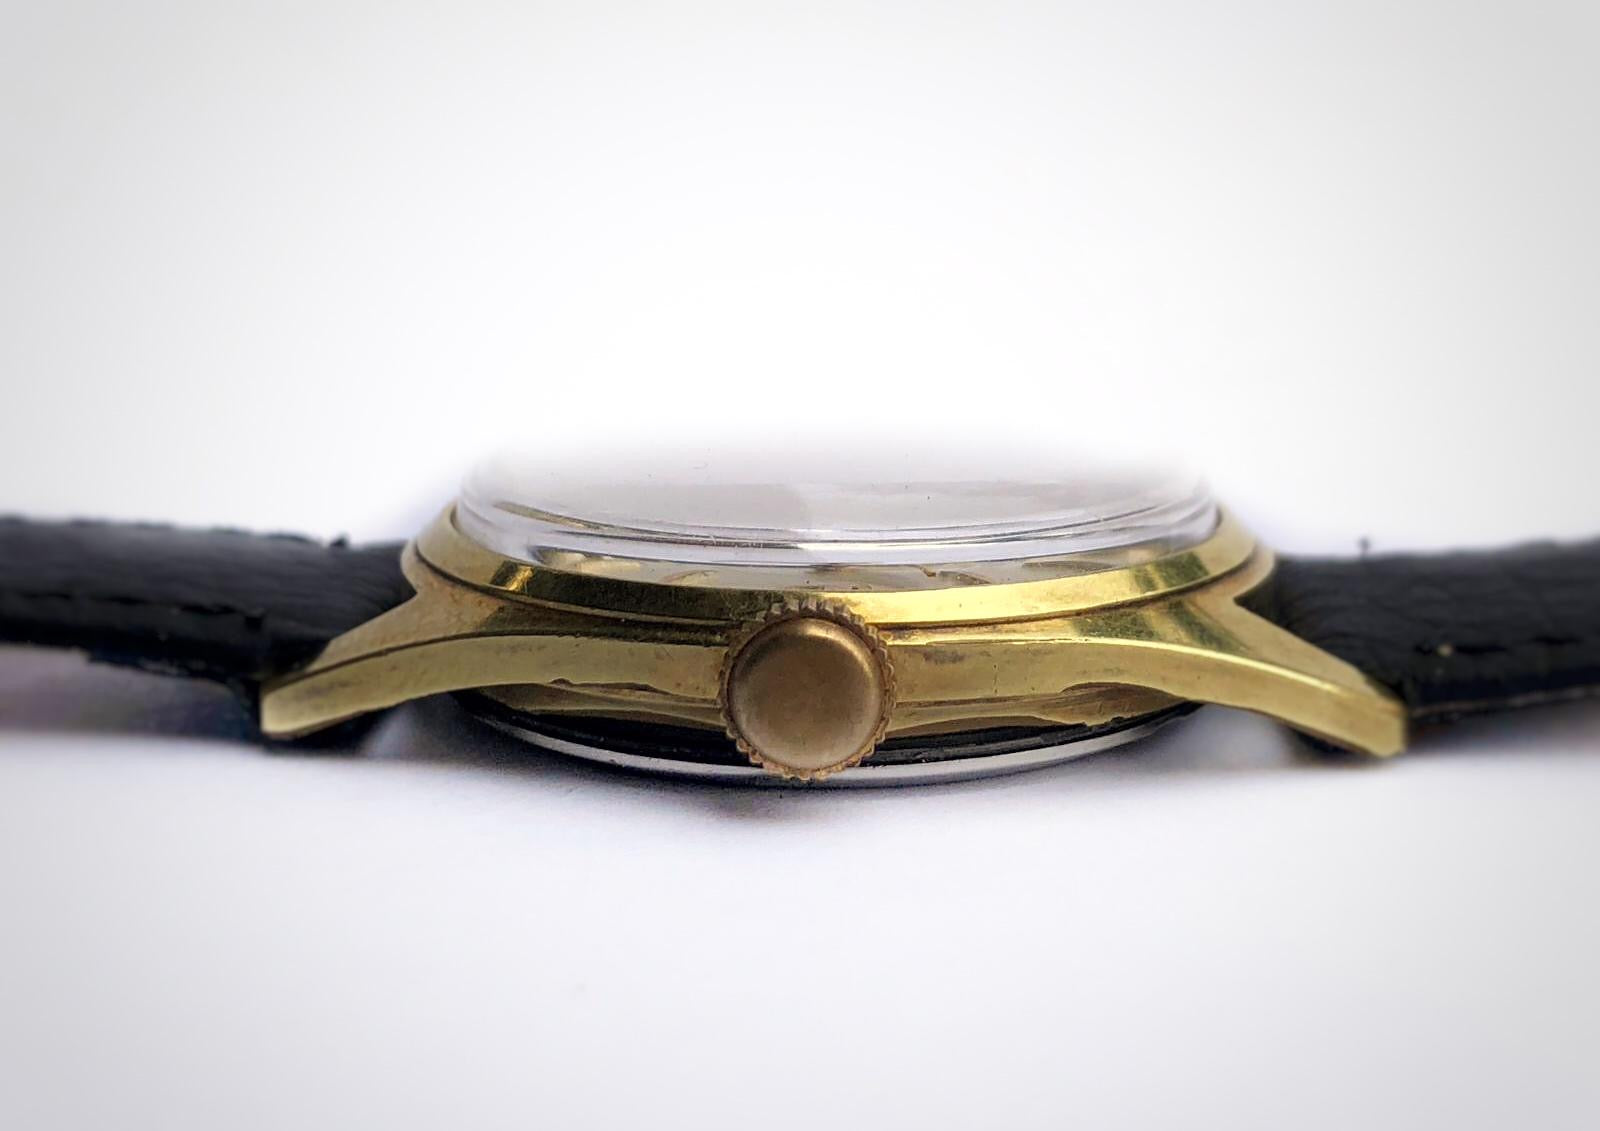 Side view of Vintage watch with linen dial and 3-6-9 pattern and gold case made by Gruen. First watch worn by James Bond as Sean Connery